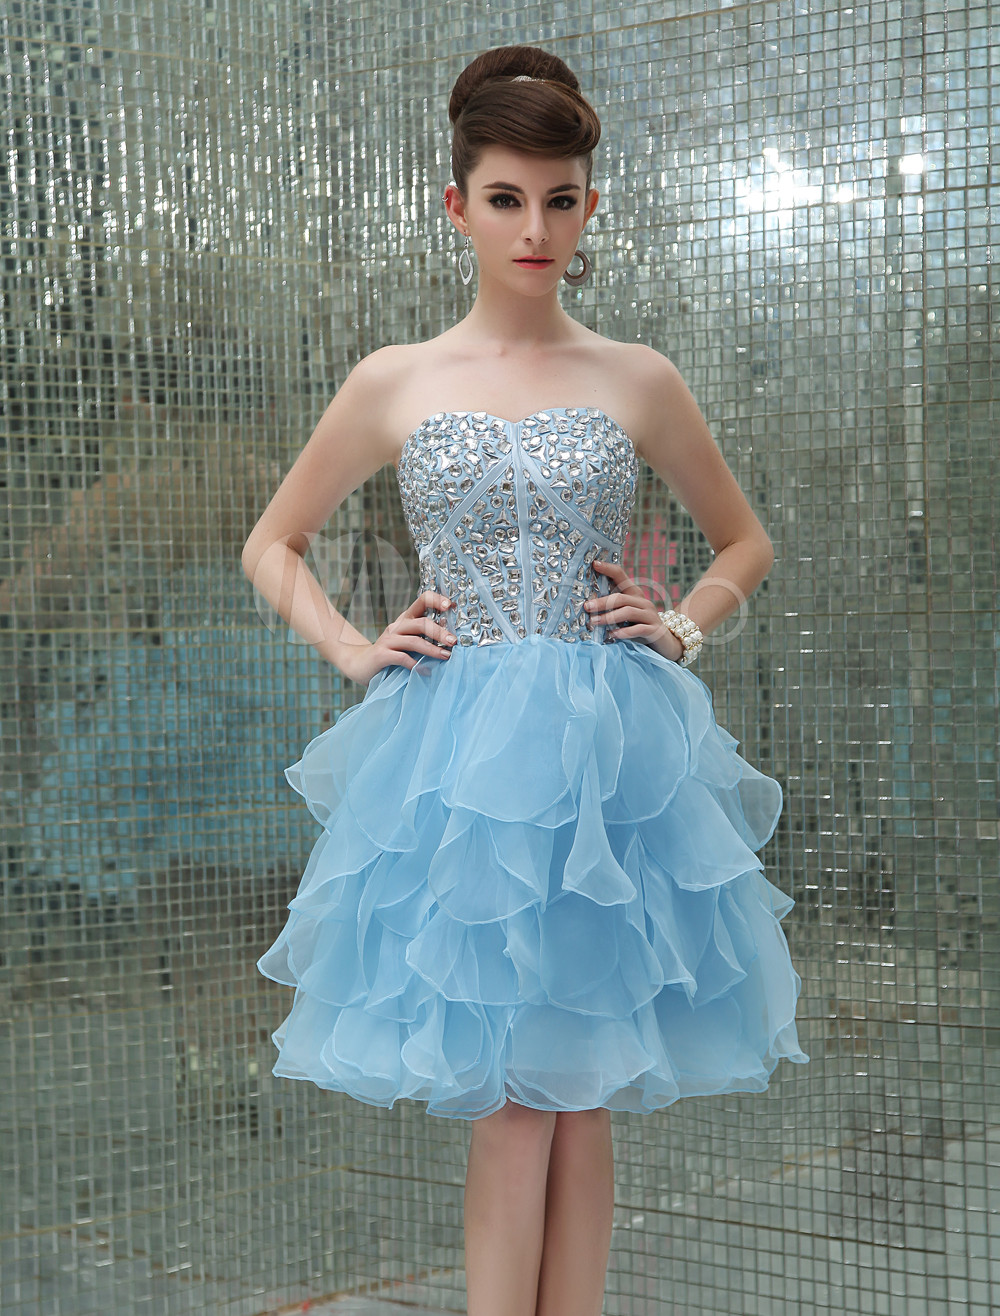 Buy Pastel Blue Cocktail Dress Tiered Organza Beaded Prom Dress Strapless Sweetheart Sleeveless A Line Short Party Dress for $129.99 in Milanoo store